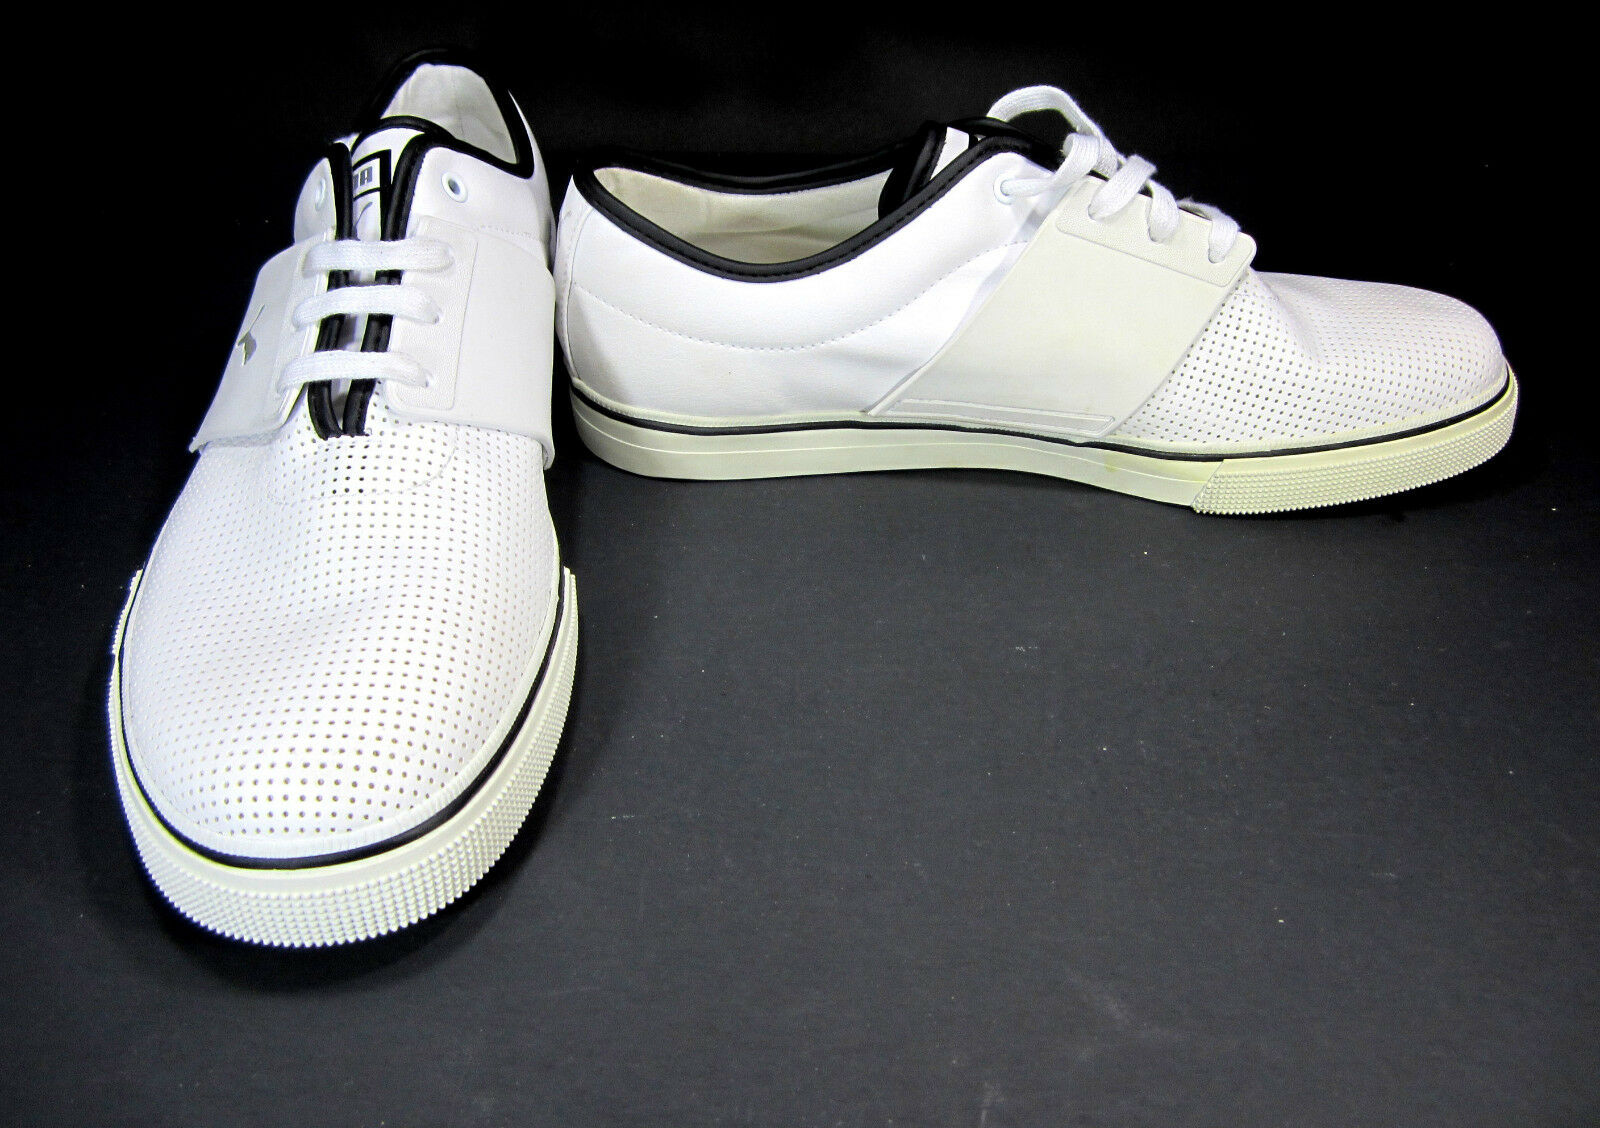 Puma Shoes El Ace Leather Perforated White/Black Sneakers Comfortable Wild casual shoes